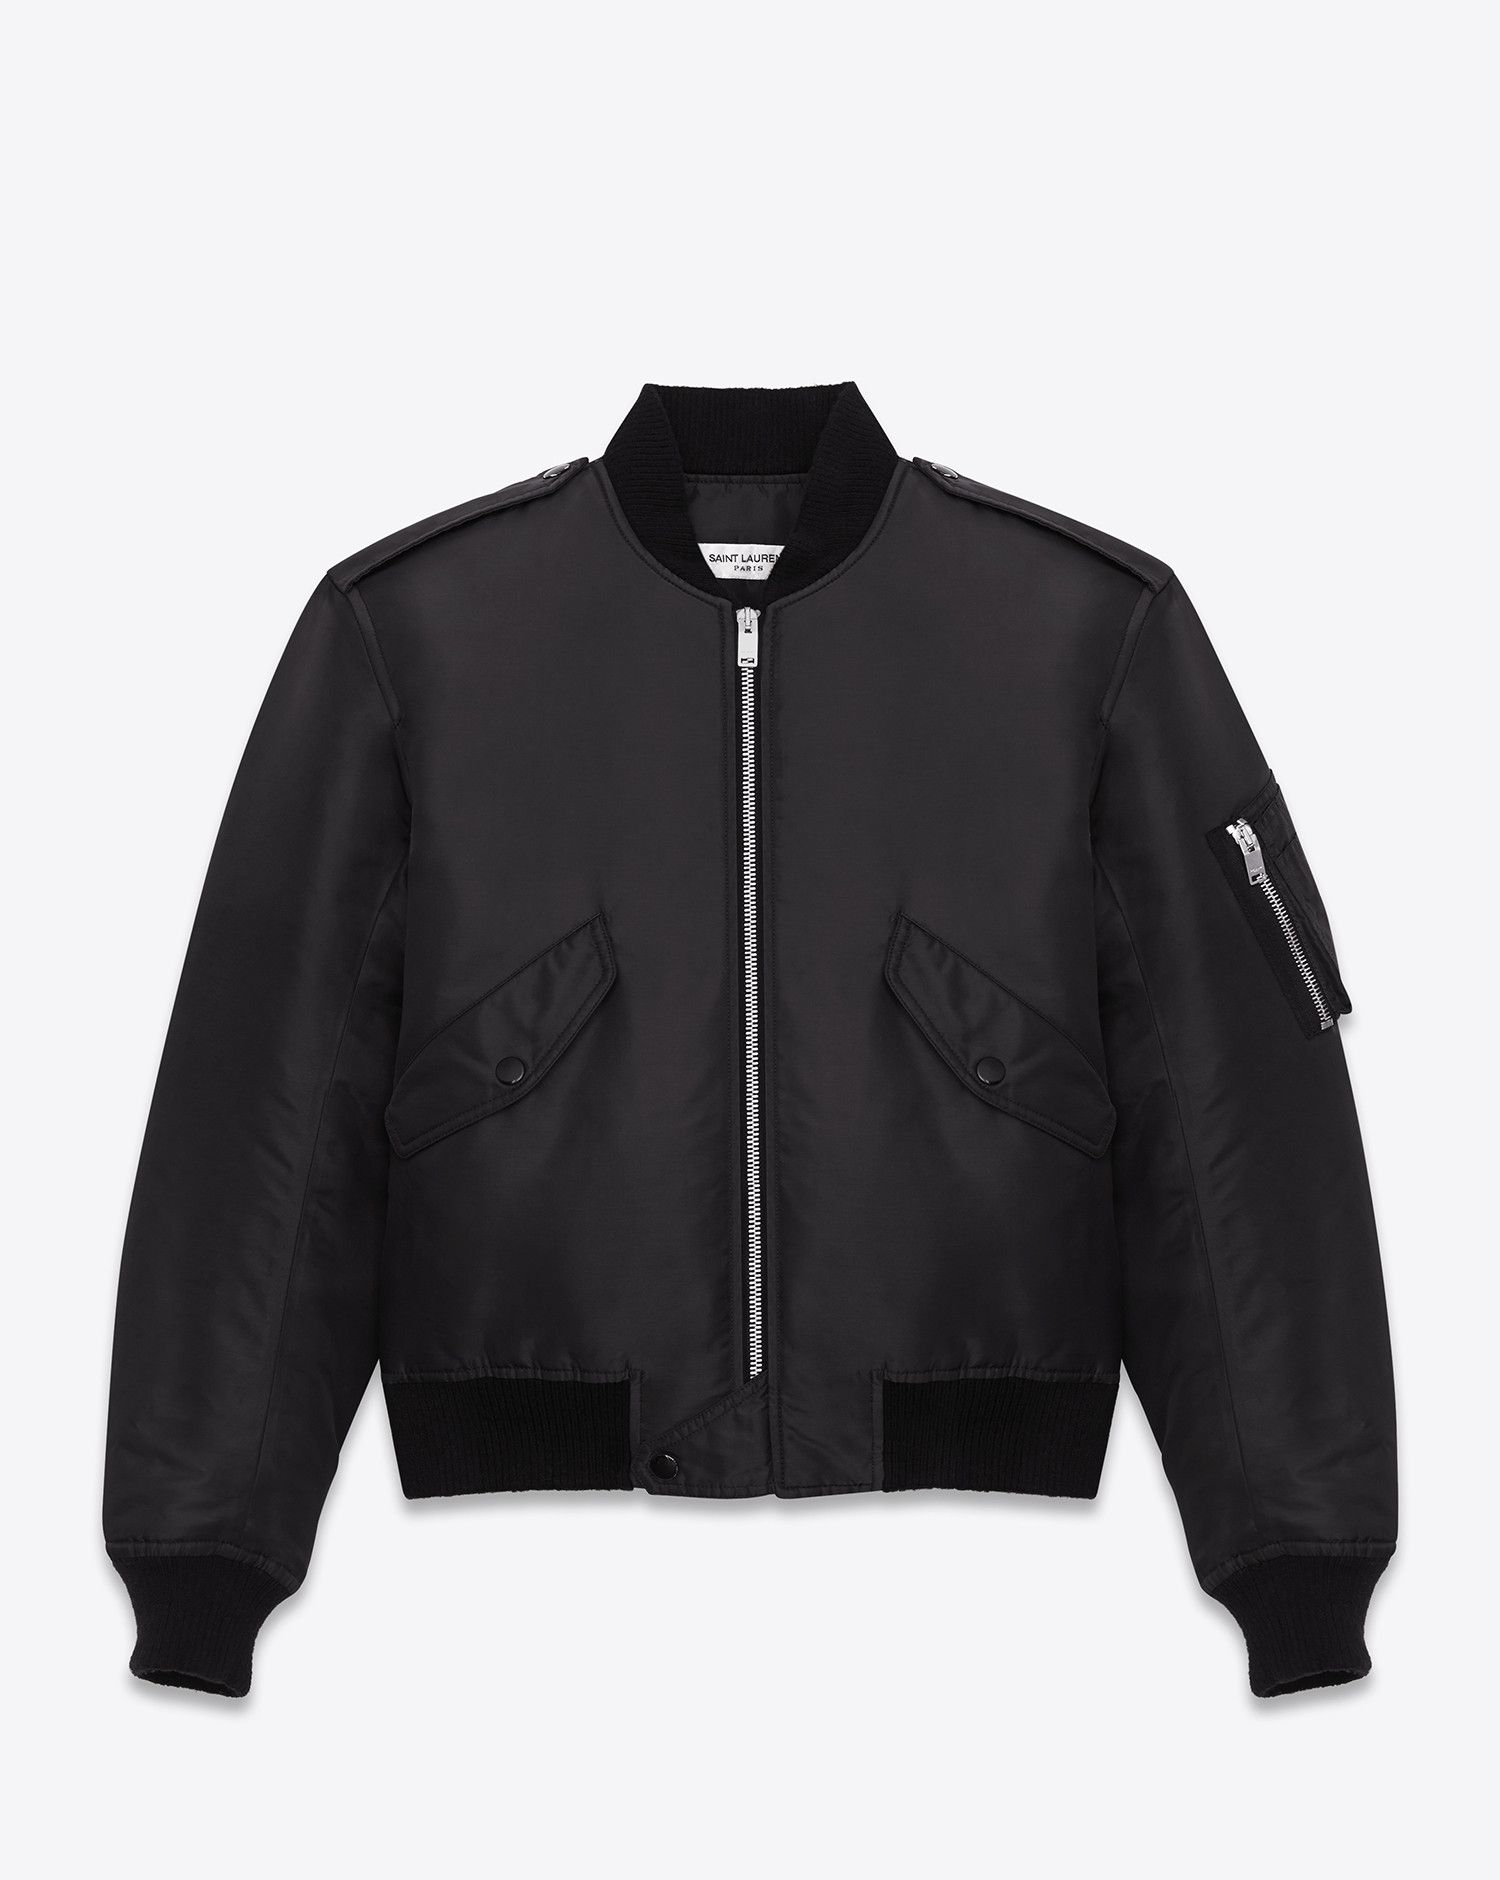 3793b5f93da Saint Laurent Classic Bomber Jacket In Black Nylon | YSL.com ...